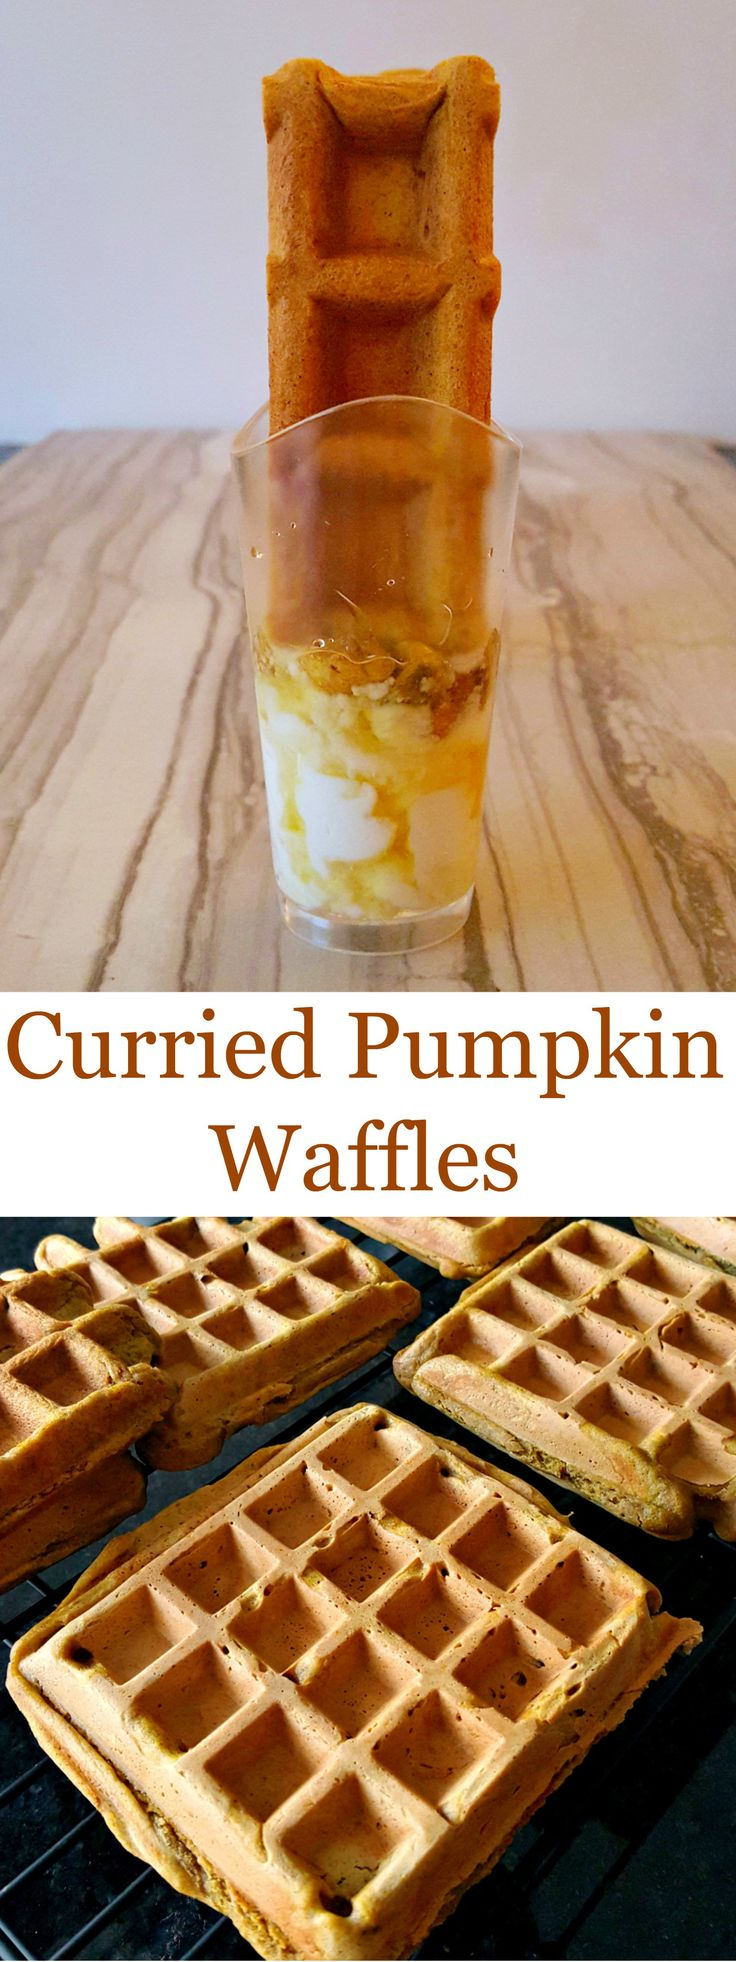 These Curried Pumpkin Waffles are the complement to my Curried Pumpkin ...